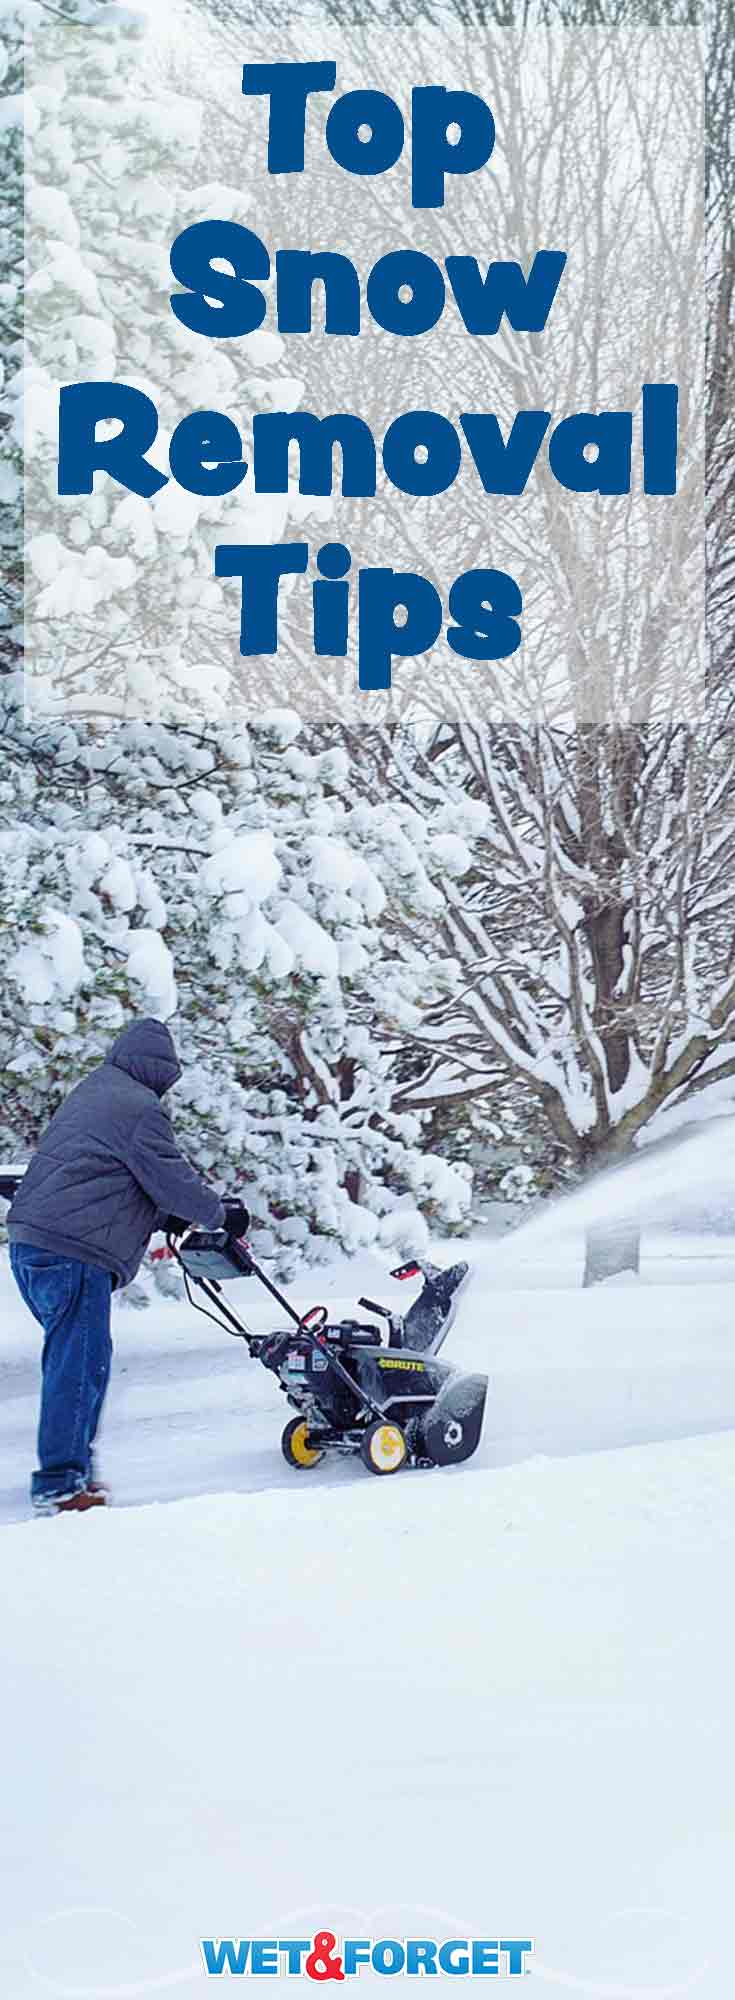 Snow removal can take hours on end. Use these top methods to plow through your snow easily, so you can enjoy that warm cup of cocoa waiting for you inside!